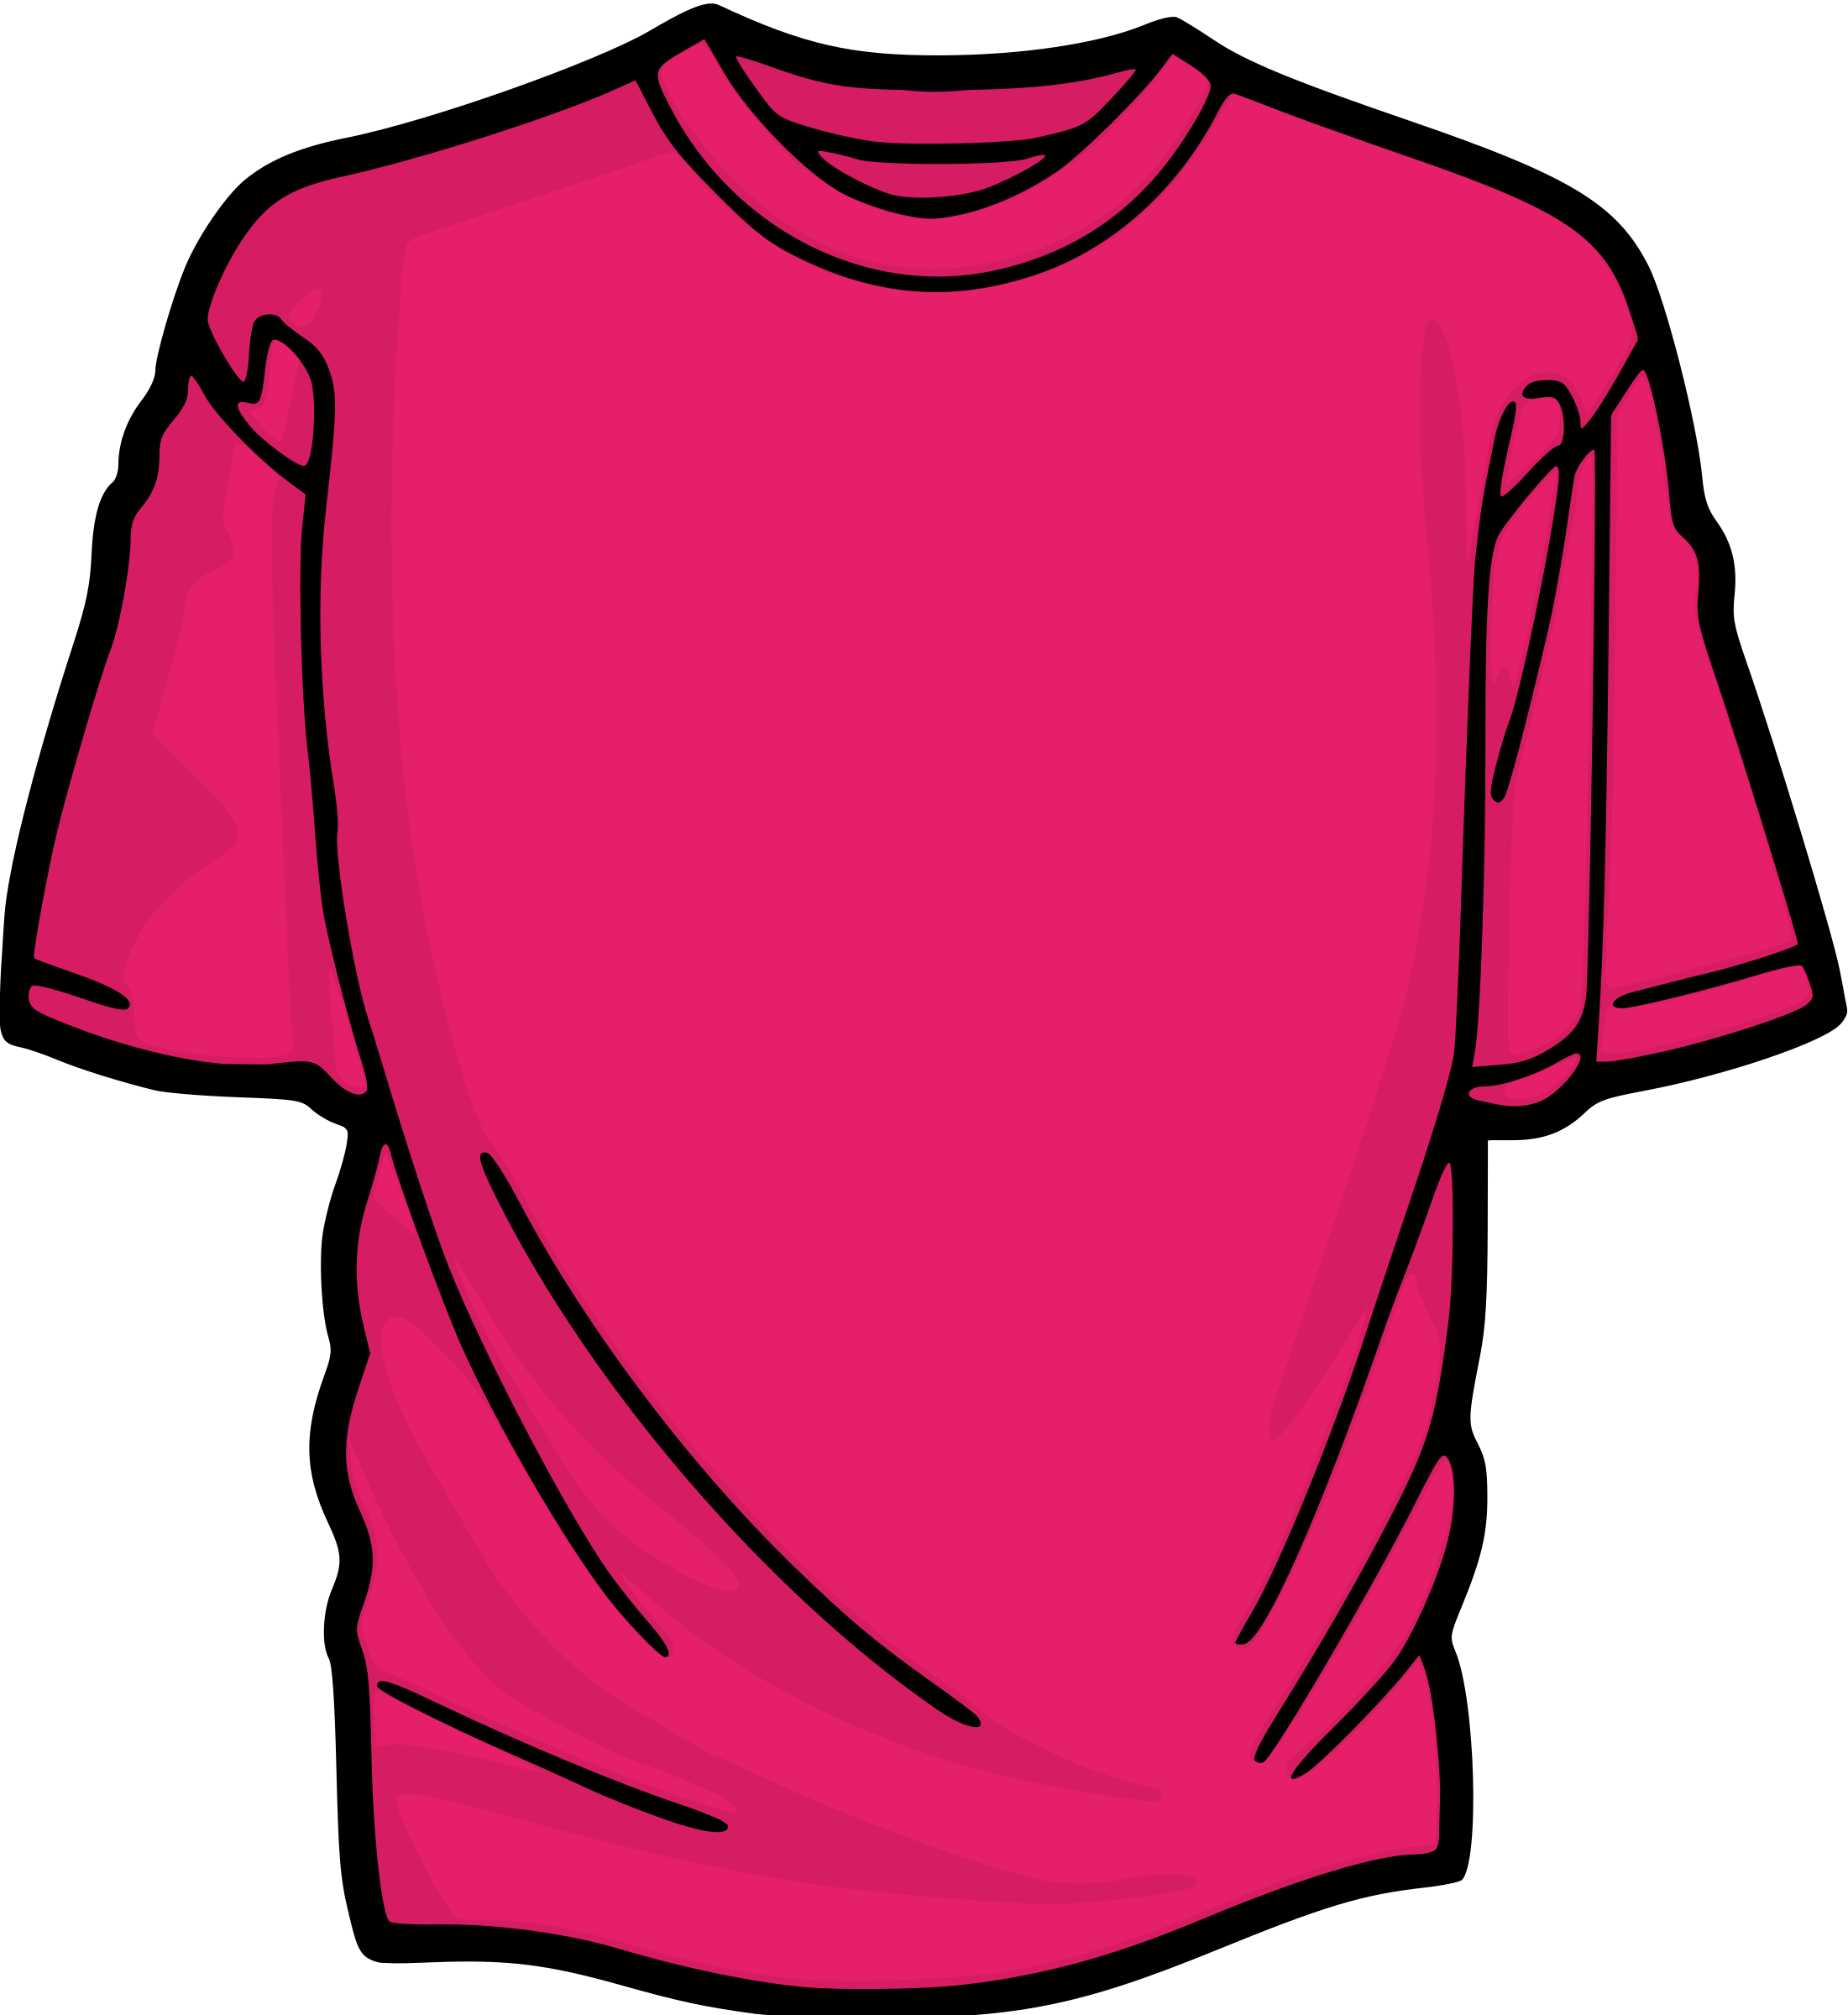 Pink clipart shark. Colored tshirt frames illustrations